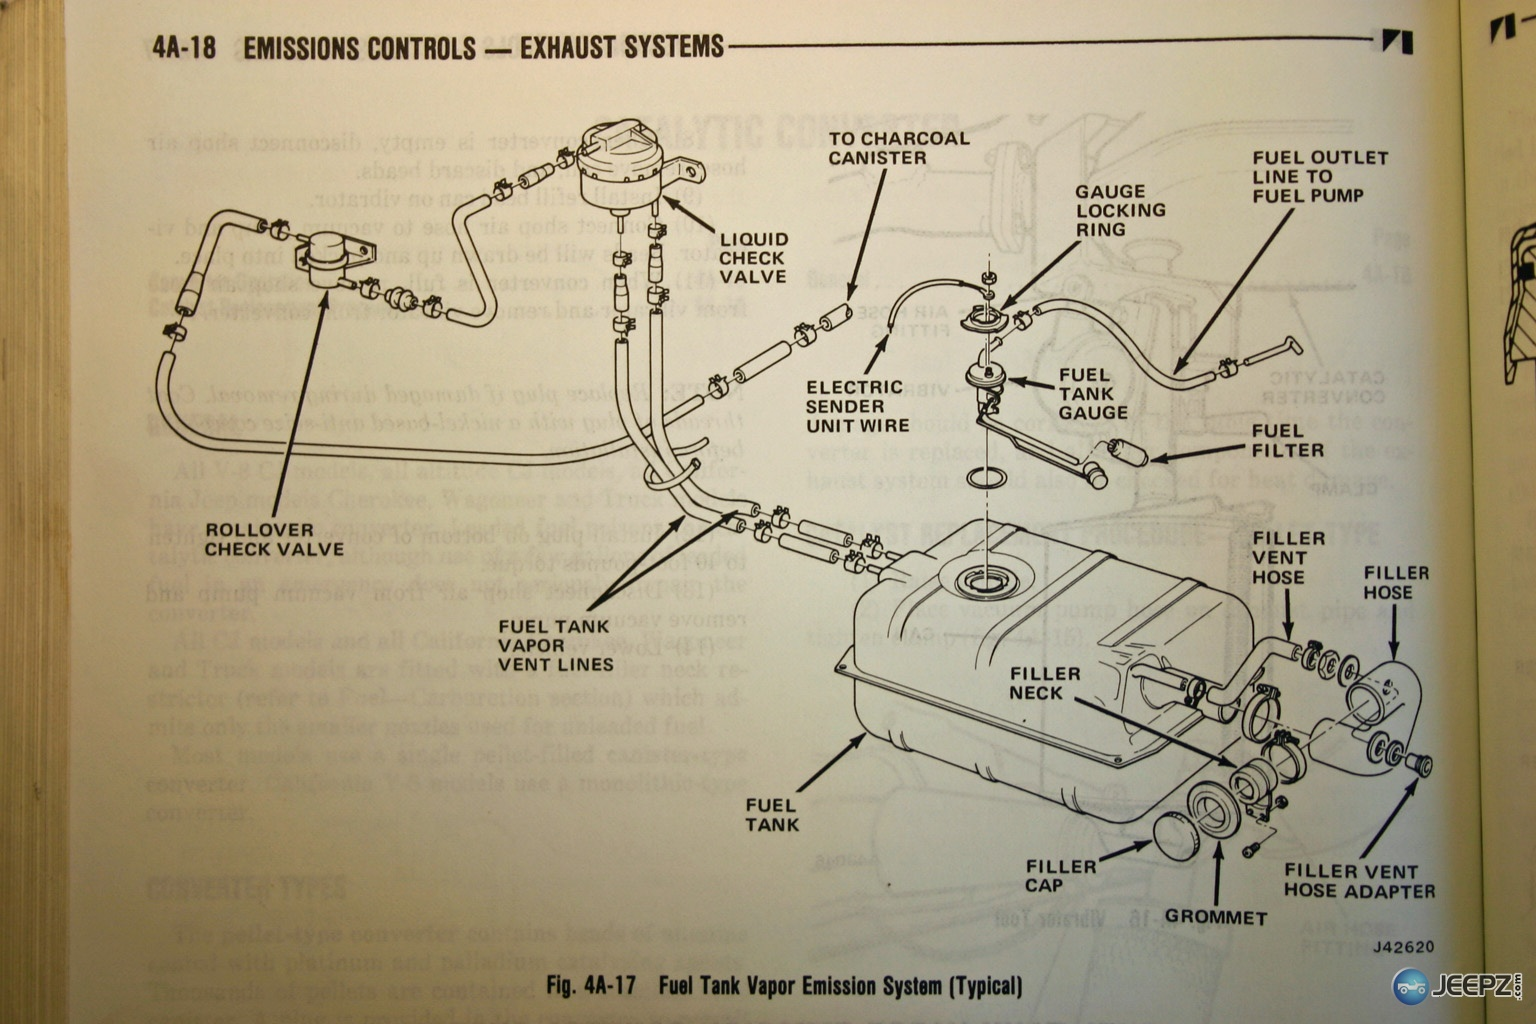 hight resolution of fuel check valve 79 jeep cherokee fuel system diagram